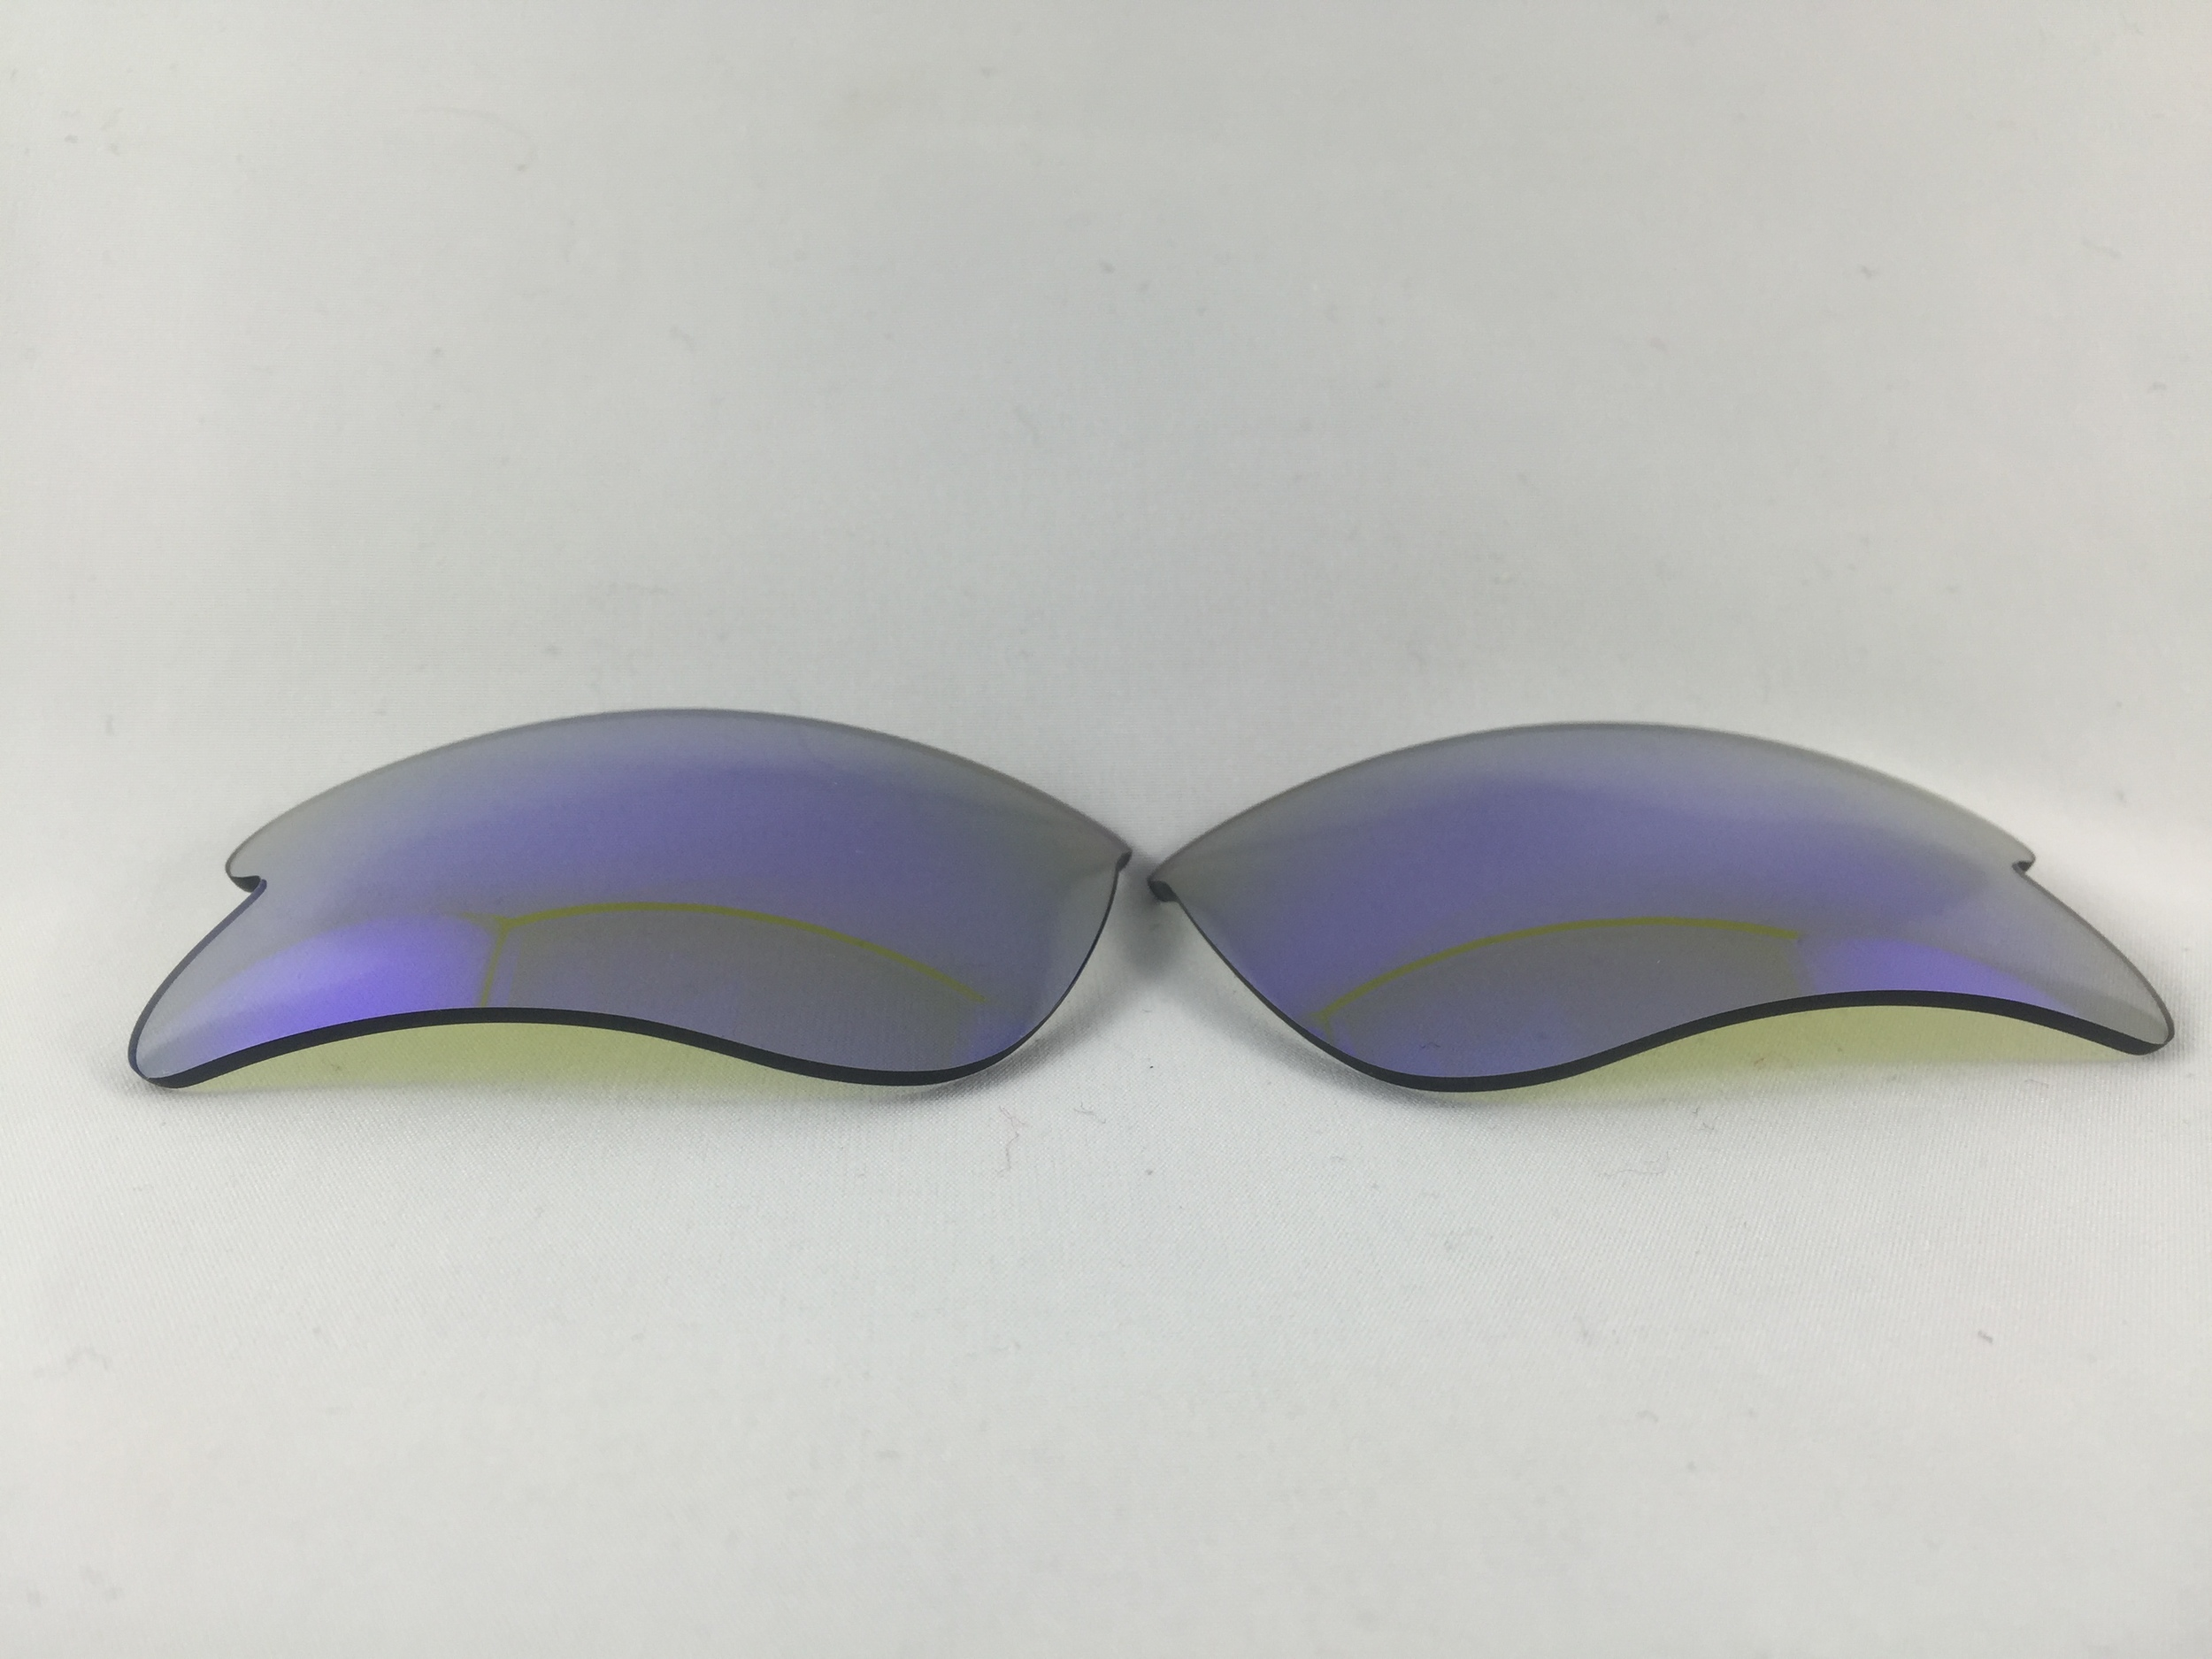 TRX Blue Transition Lens Category 1-2    $45 plus tax